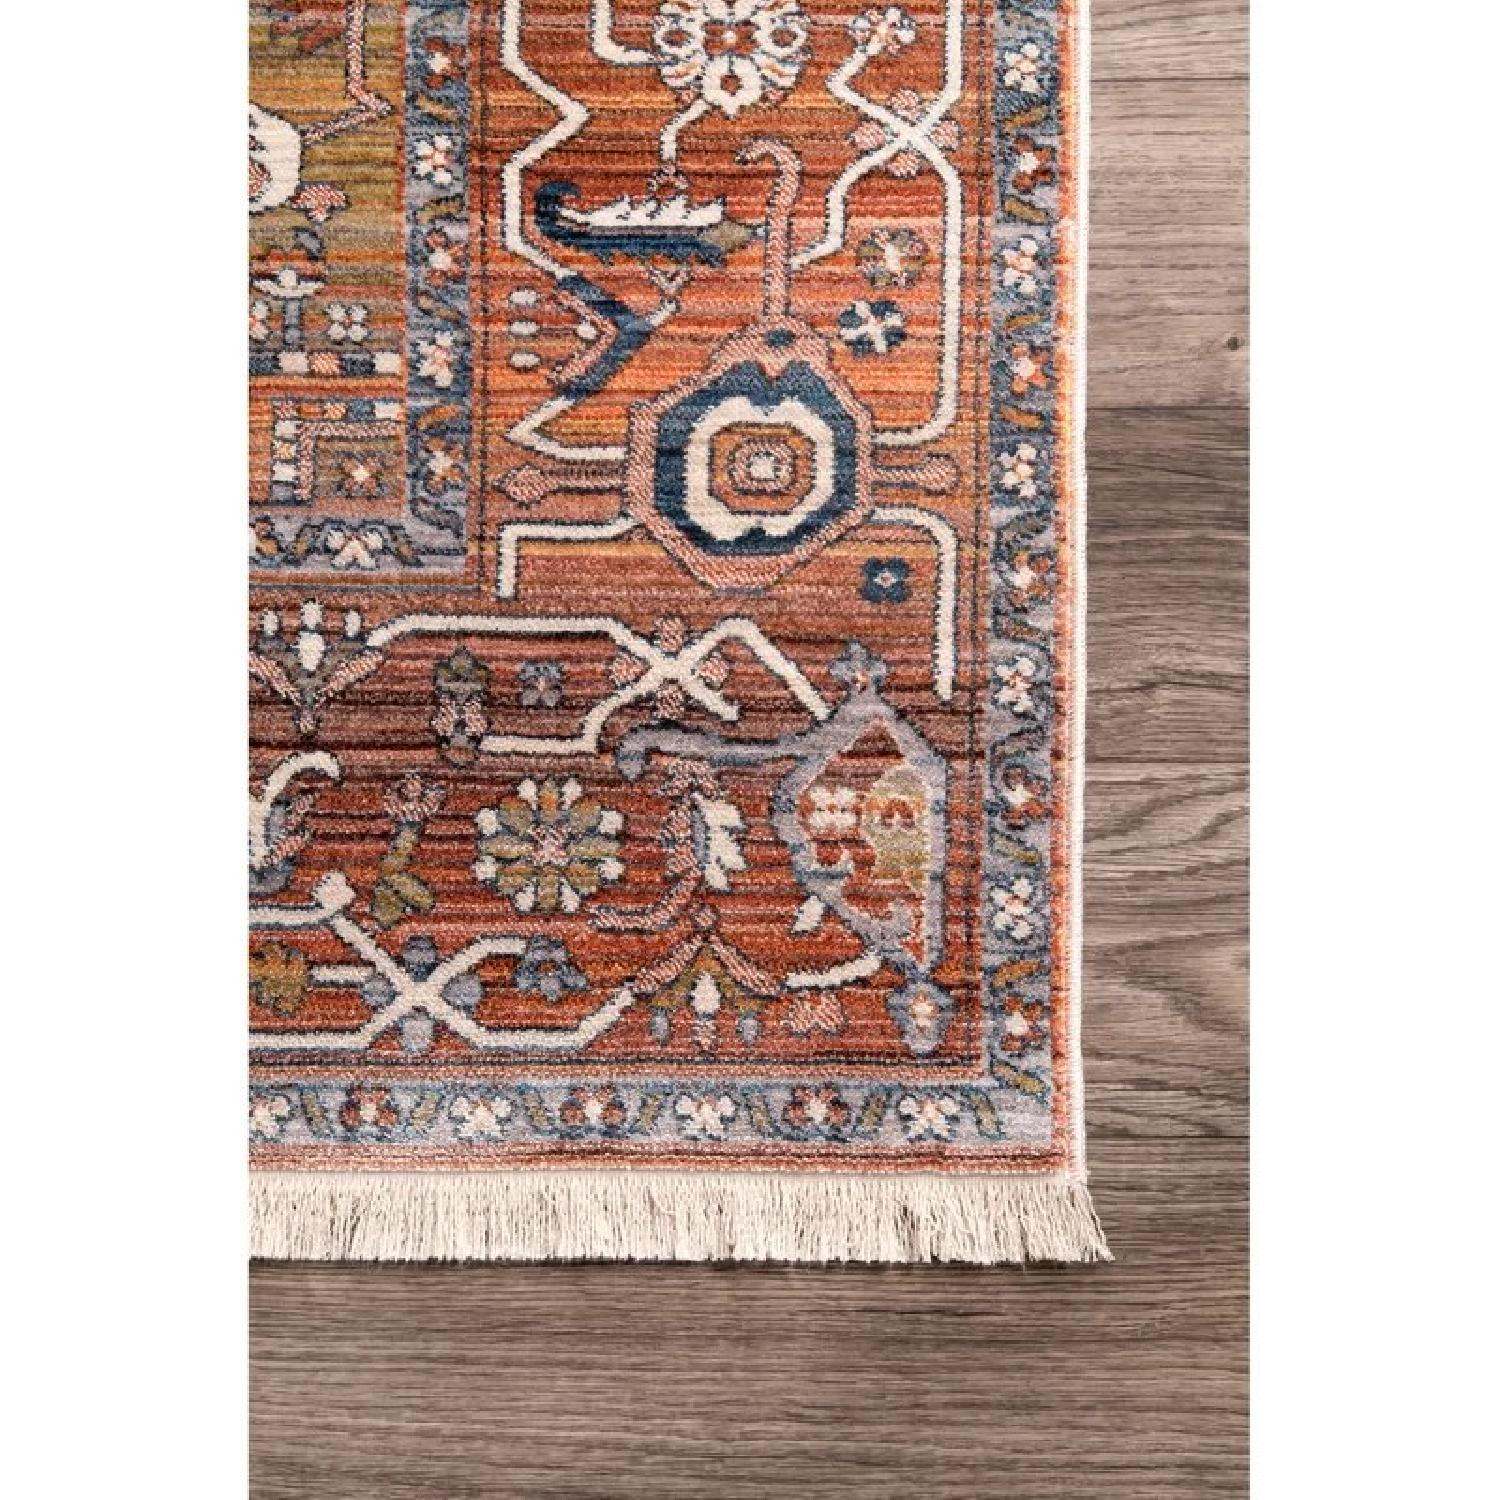 World Menagerie Persian Style Area Rug-1